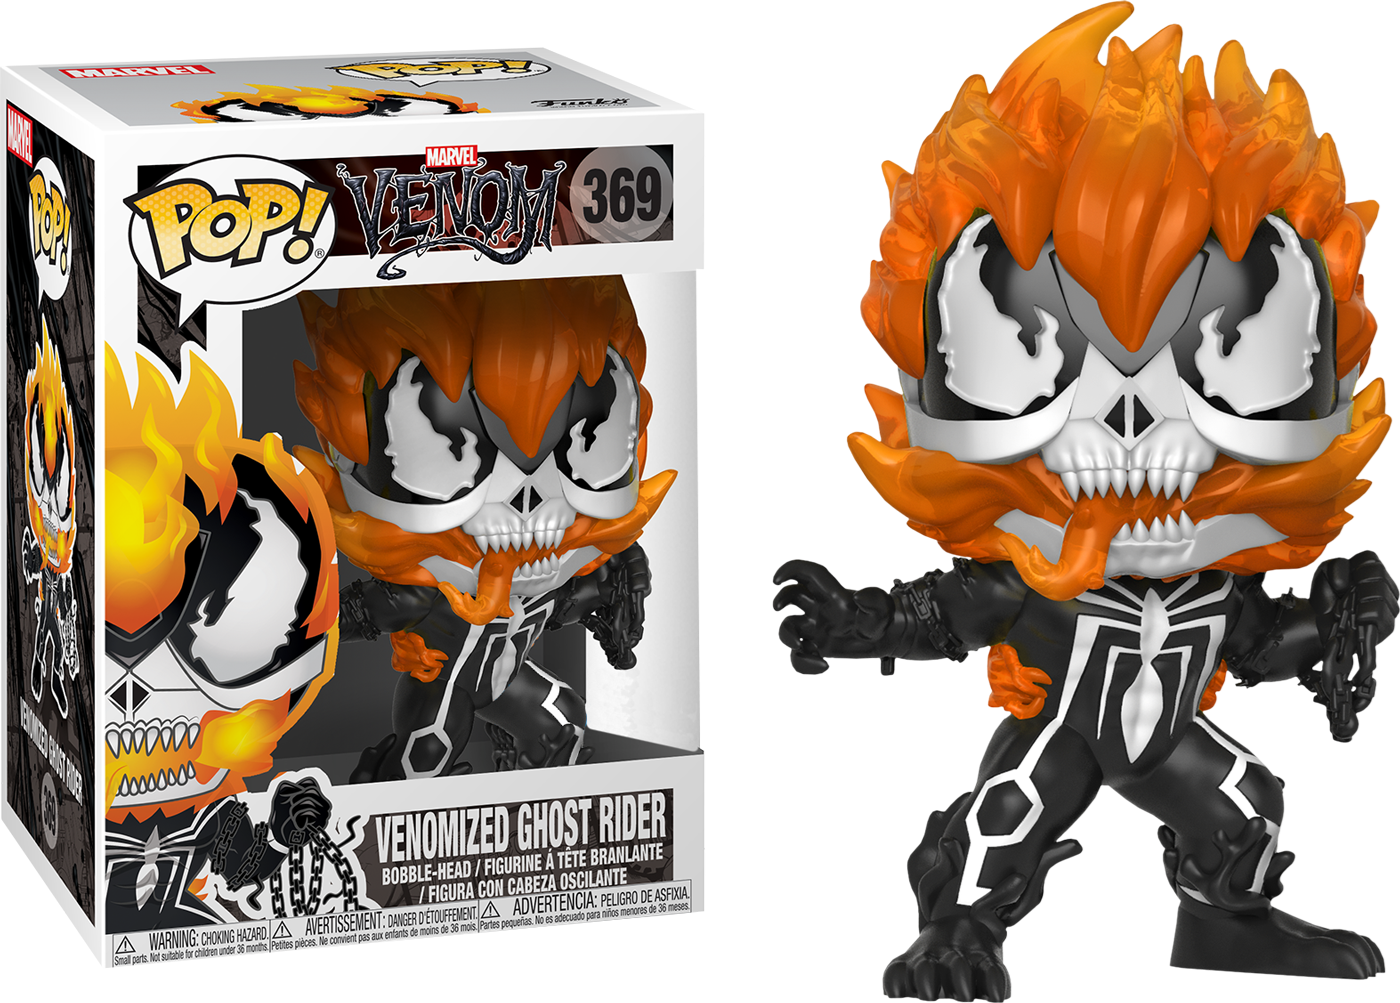 Marvel venom vinyl bobble head venomized ghost rider 369 exclusive no sticker www toysonfire ca